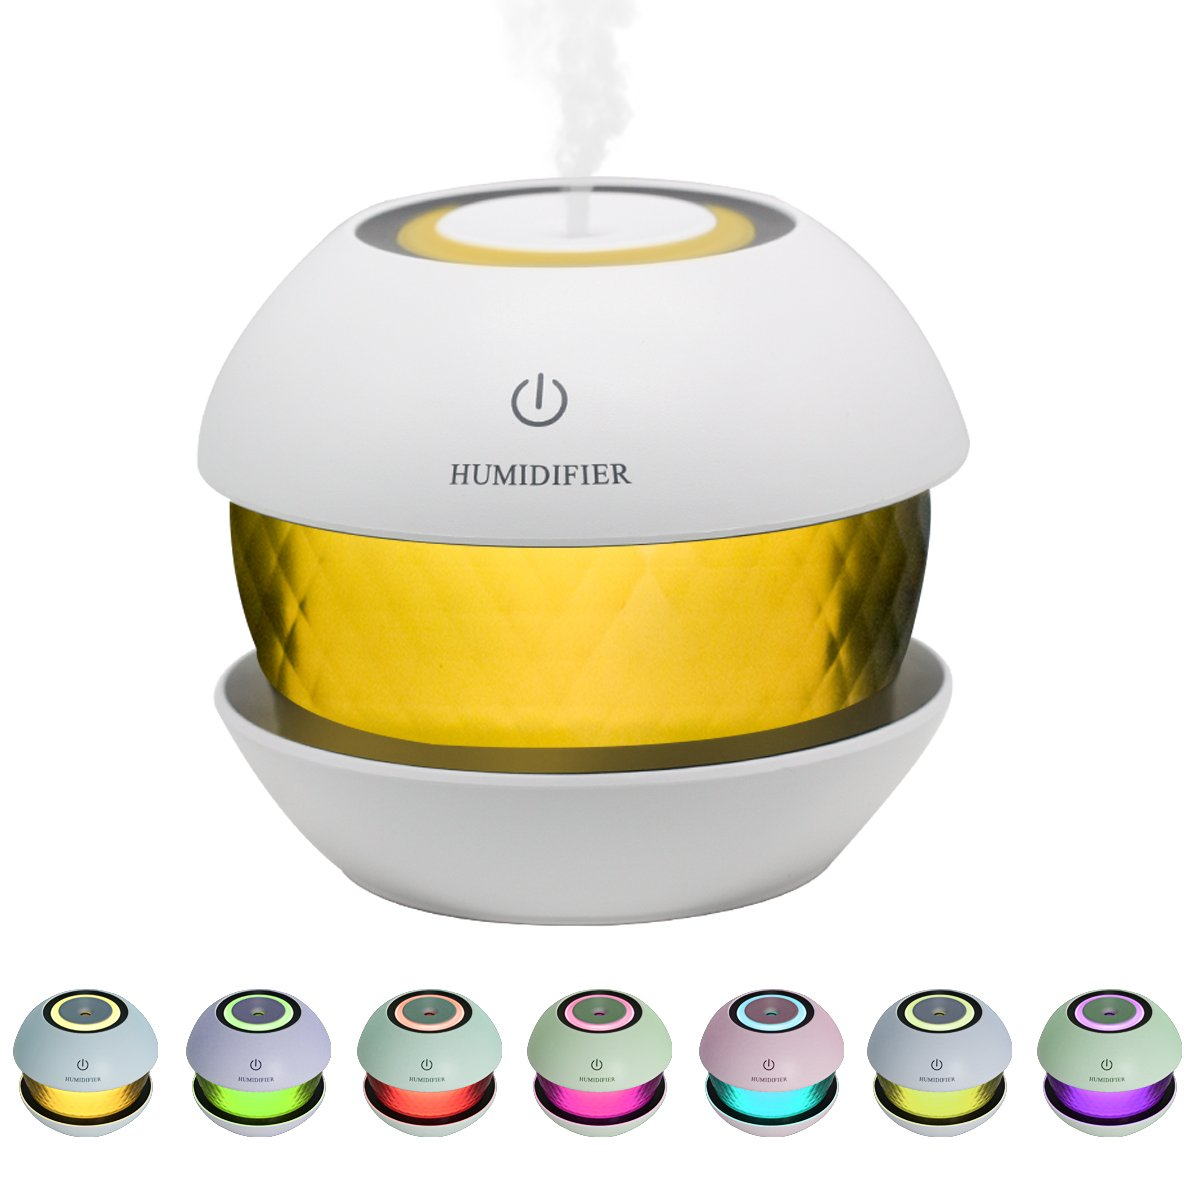 SUPTEMPO Ultrasonic Cool Mist Humidifiers Diffuser Premium Air Humidifier for Car, Office, Bedroom, Spa, Yoga, 150ml Round Spray USB Humidifier with Led Night Light Colorful Change-Black